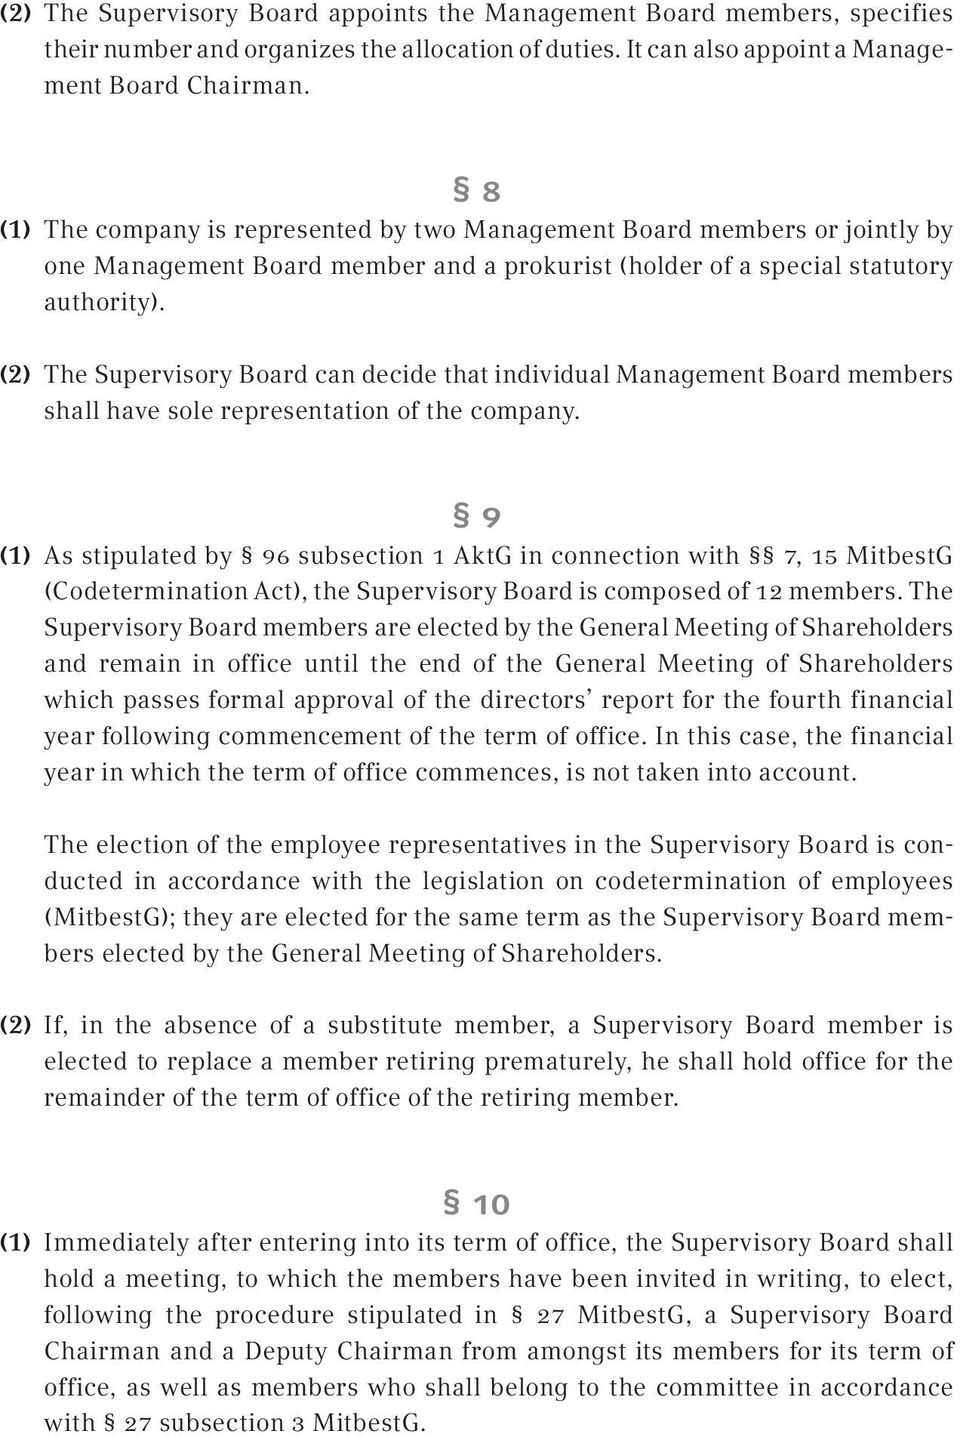 (2) The Supervisory Board can decide that individual Management Board members shall have sole representation of the company.